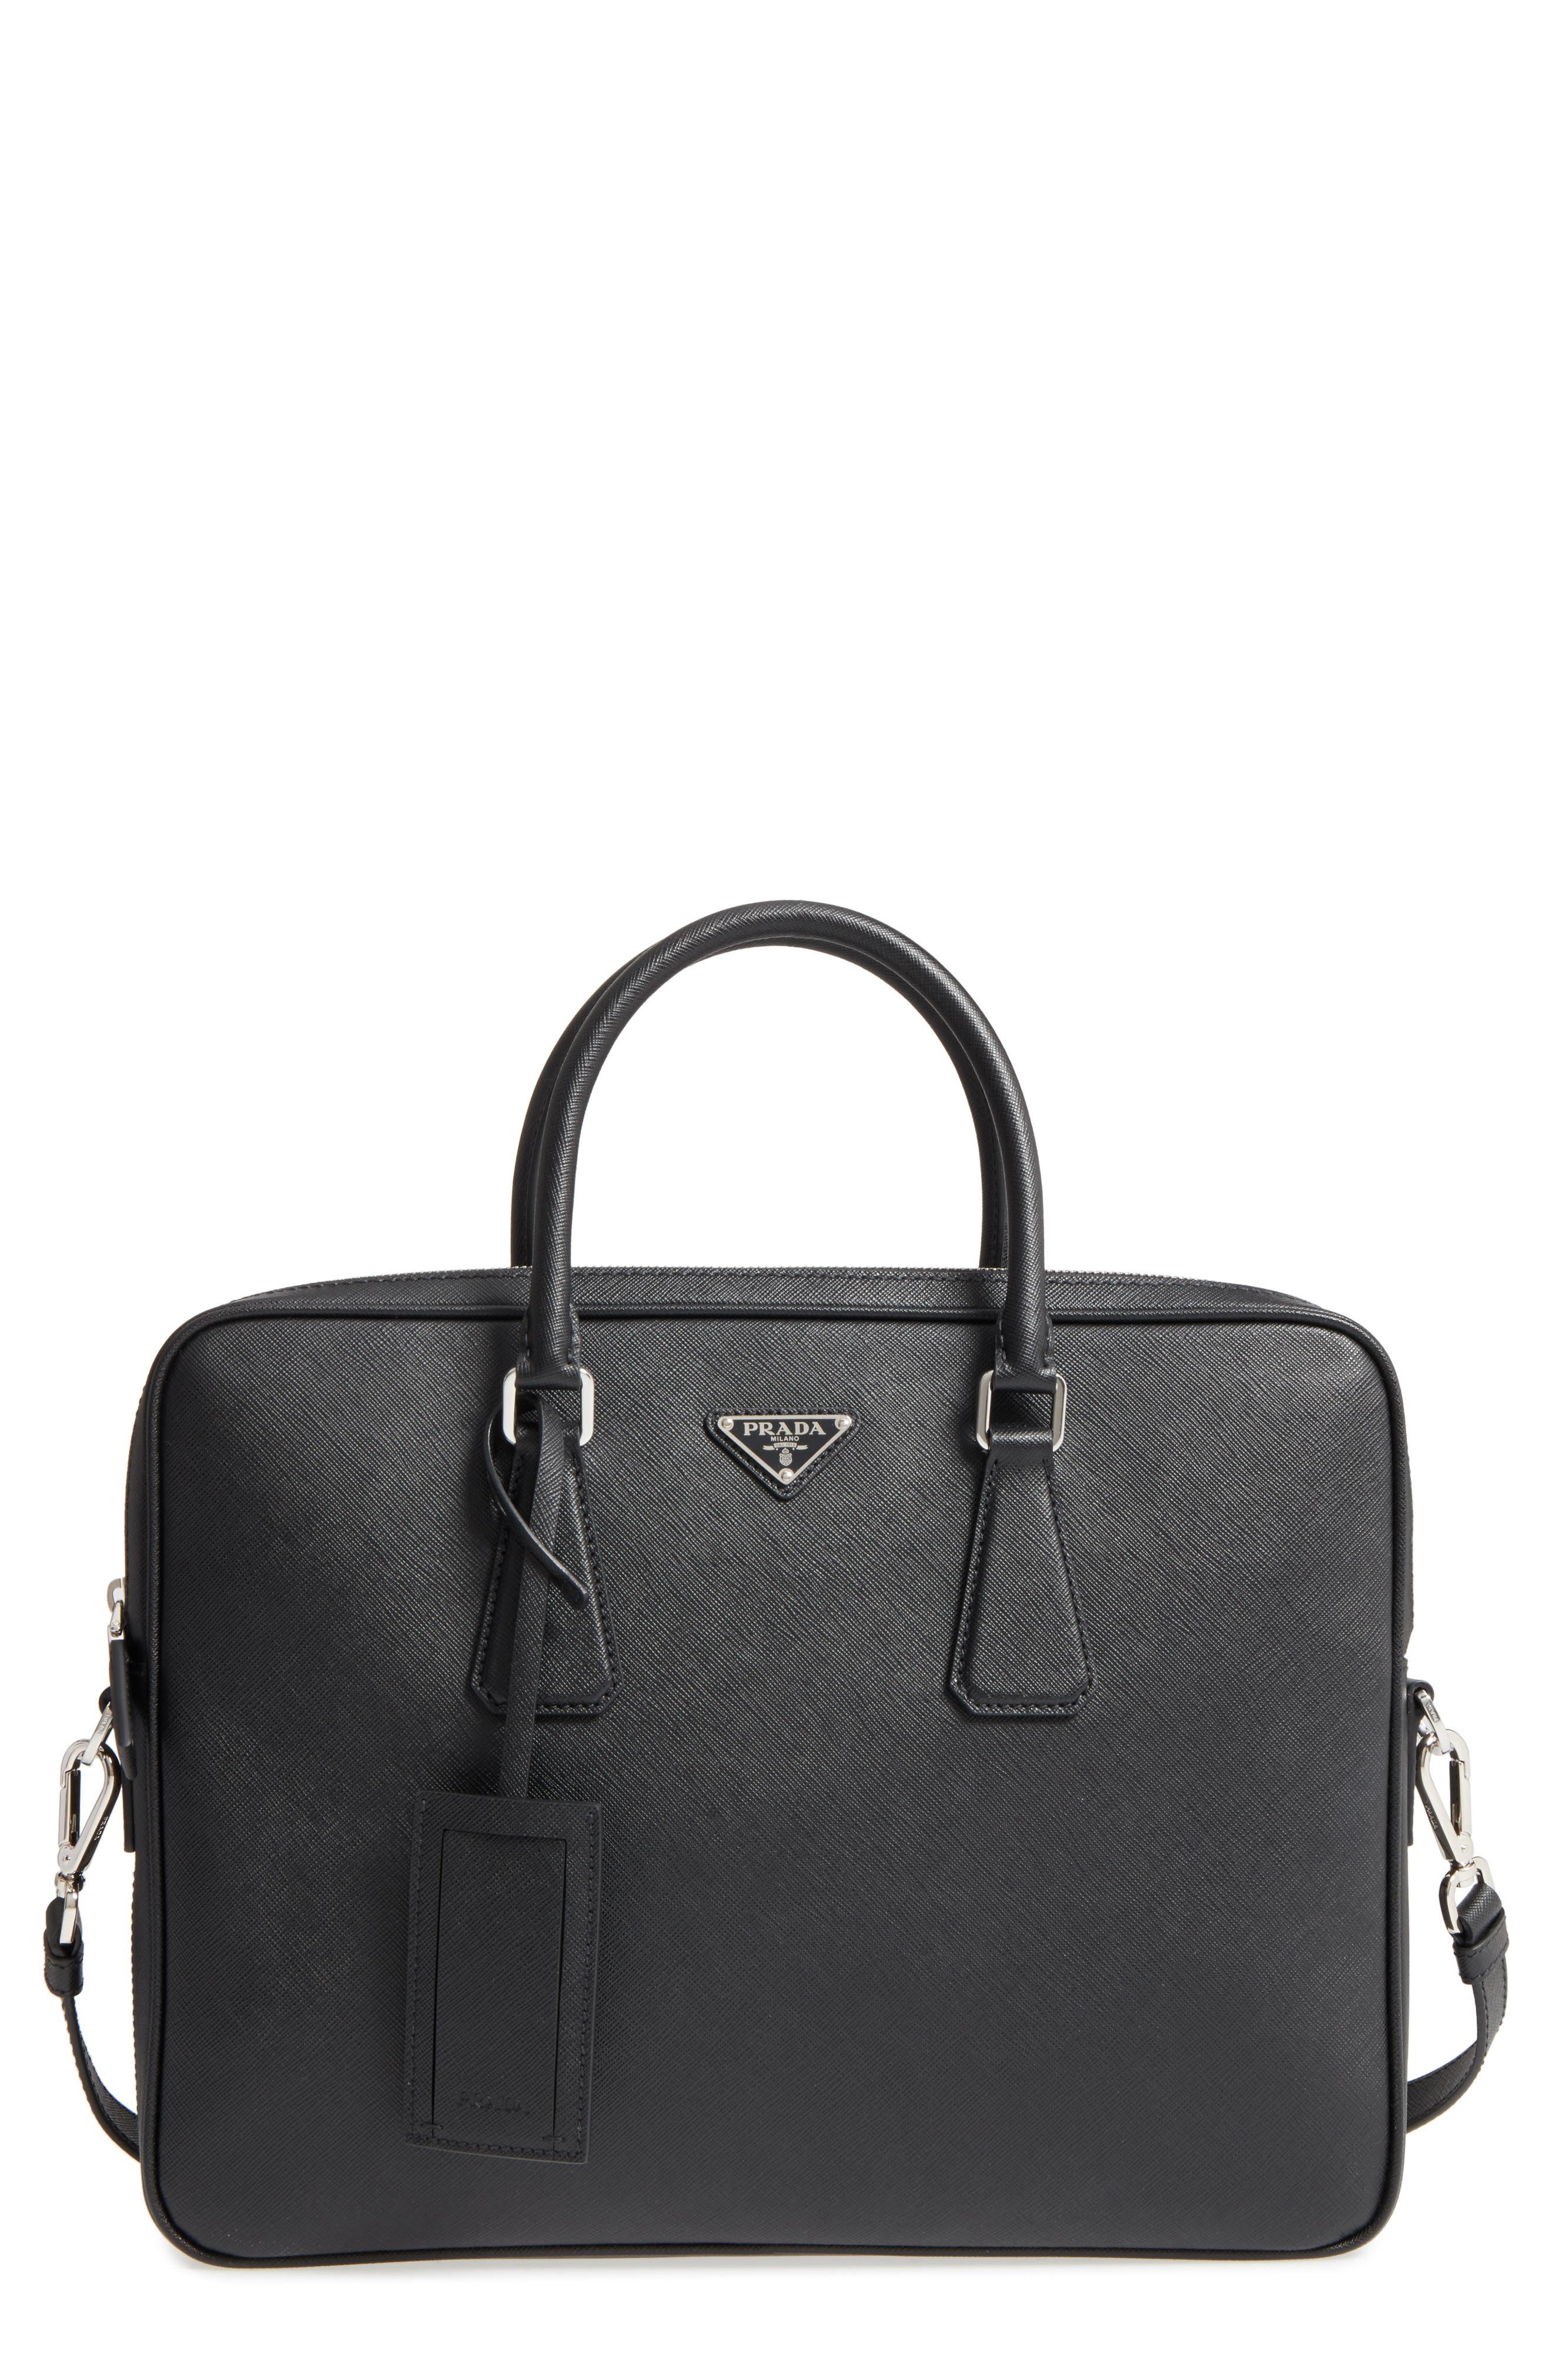 Saffiano Leather Briefcase,                             Main thumbnail 1, color,                             Black